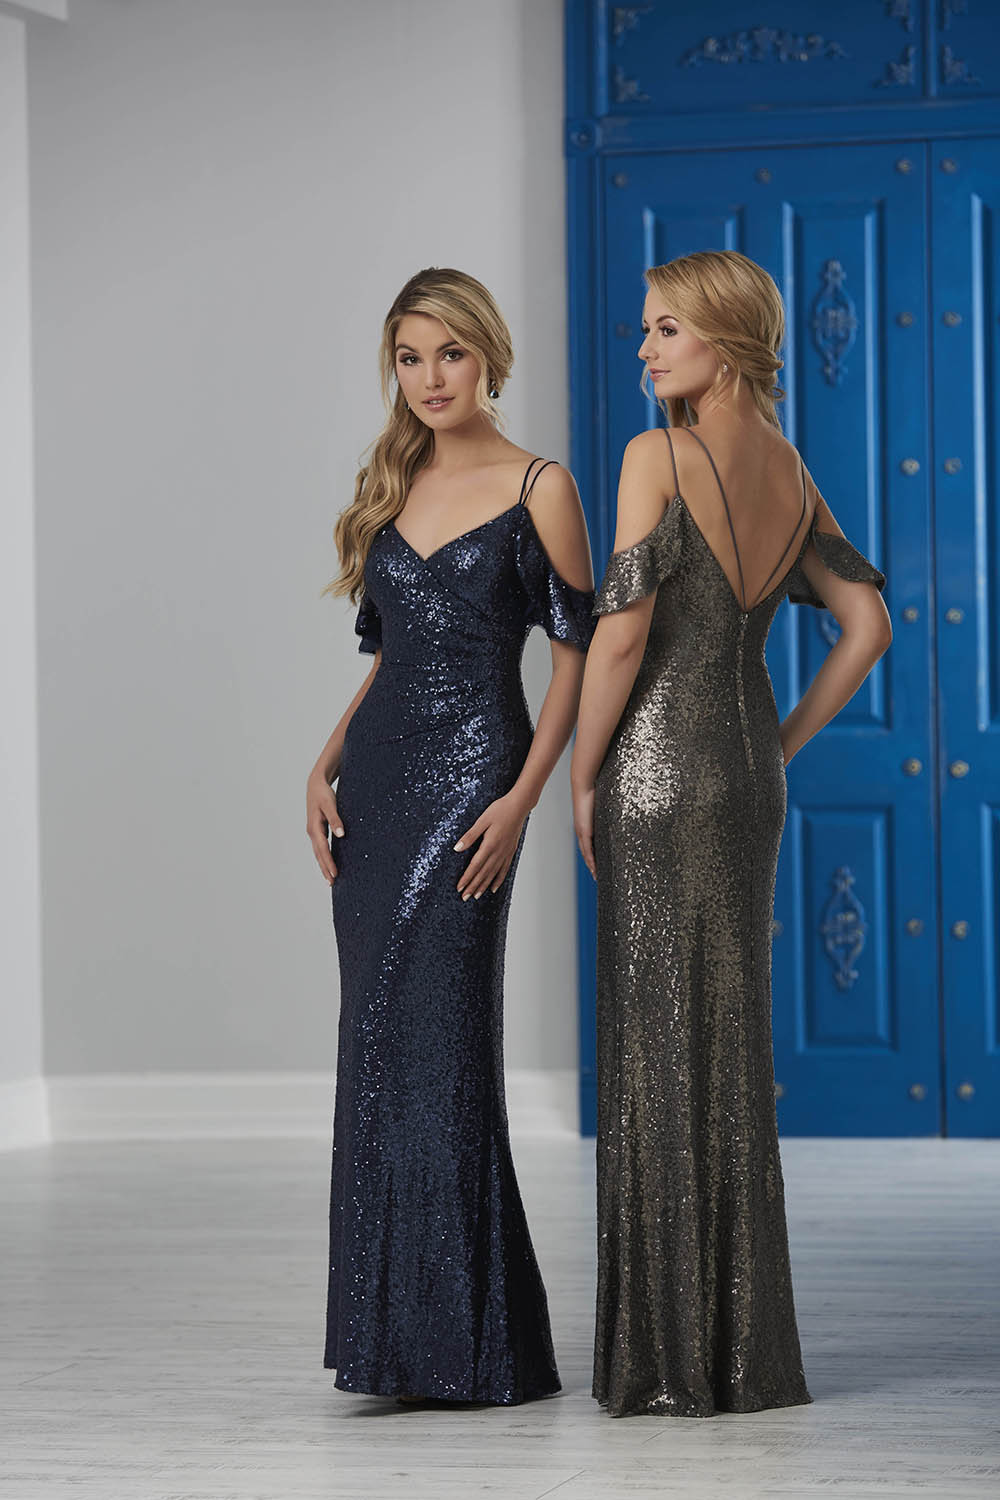 bridesmaid-dresses-jacquelin-bridals-canada-26204